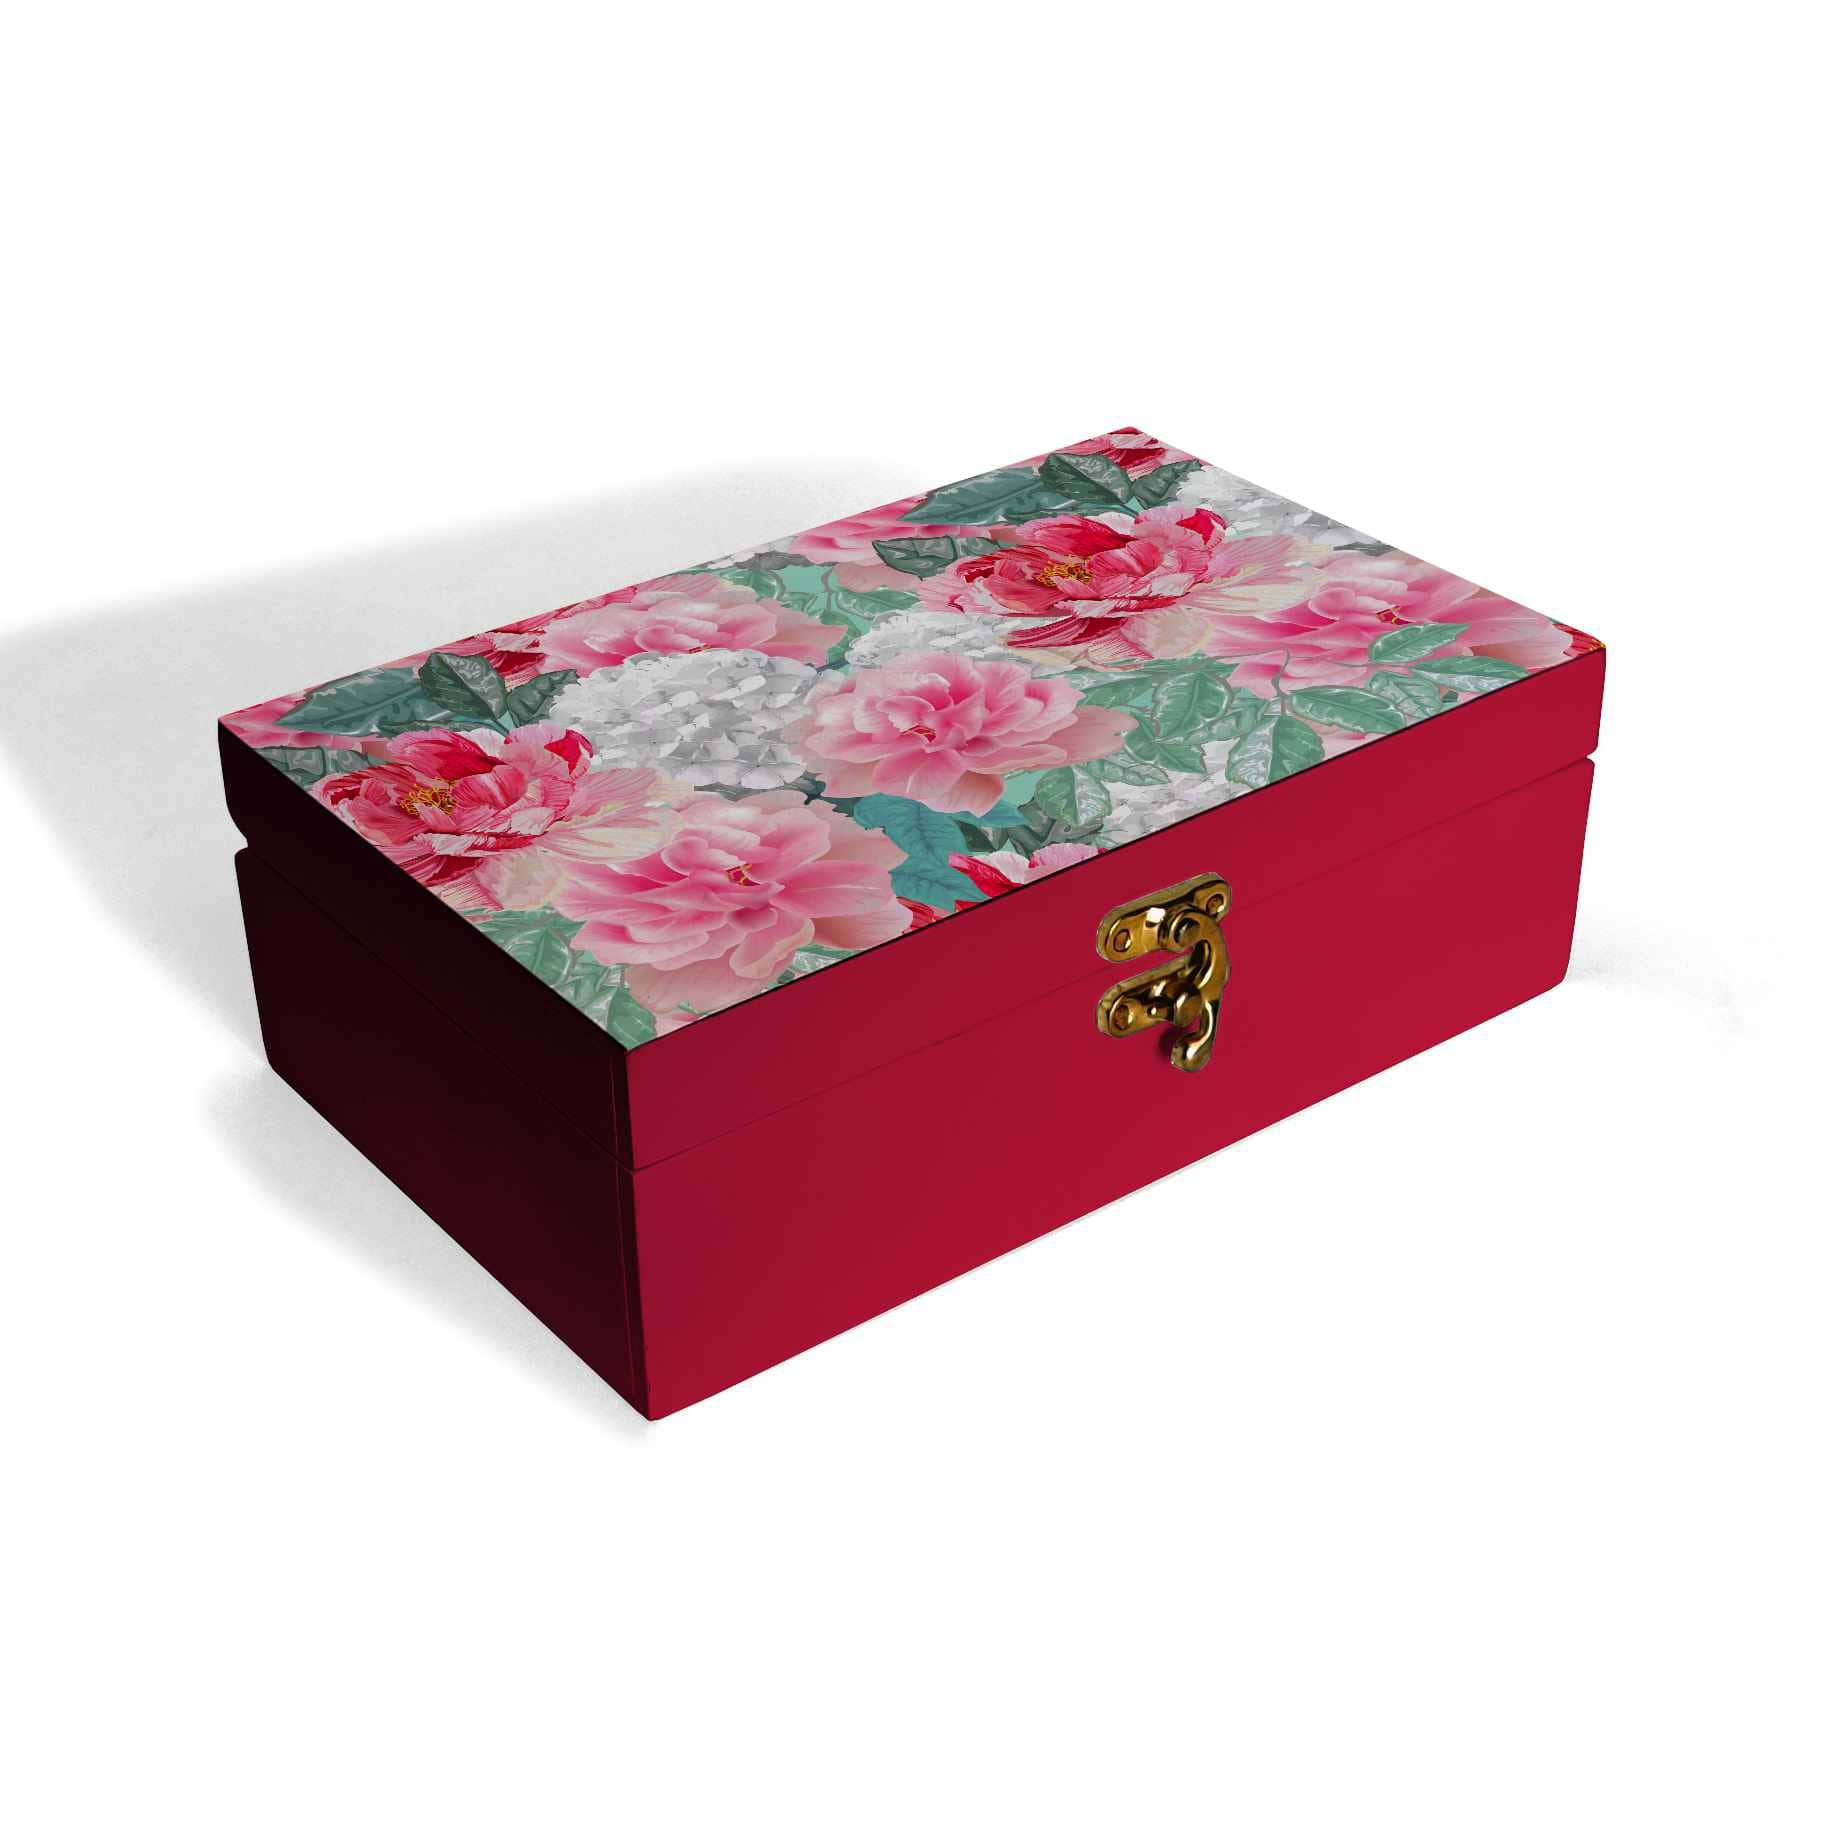 Red Chrysanthemums Box Moyen